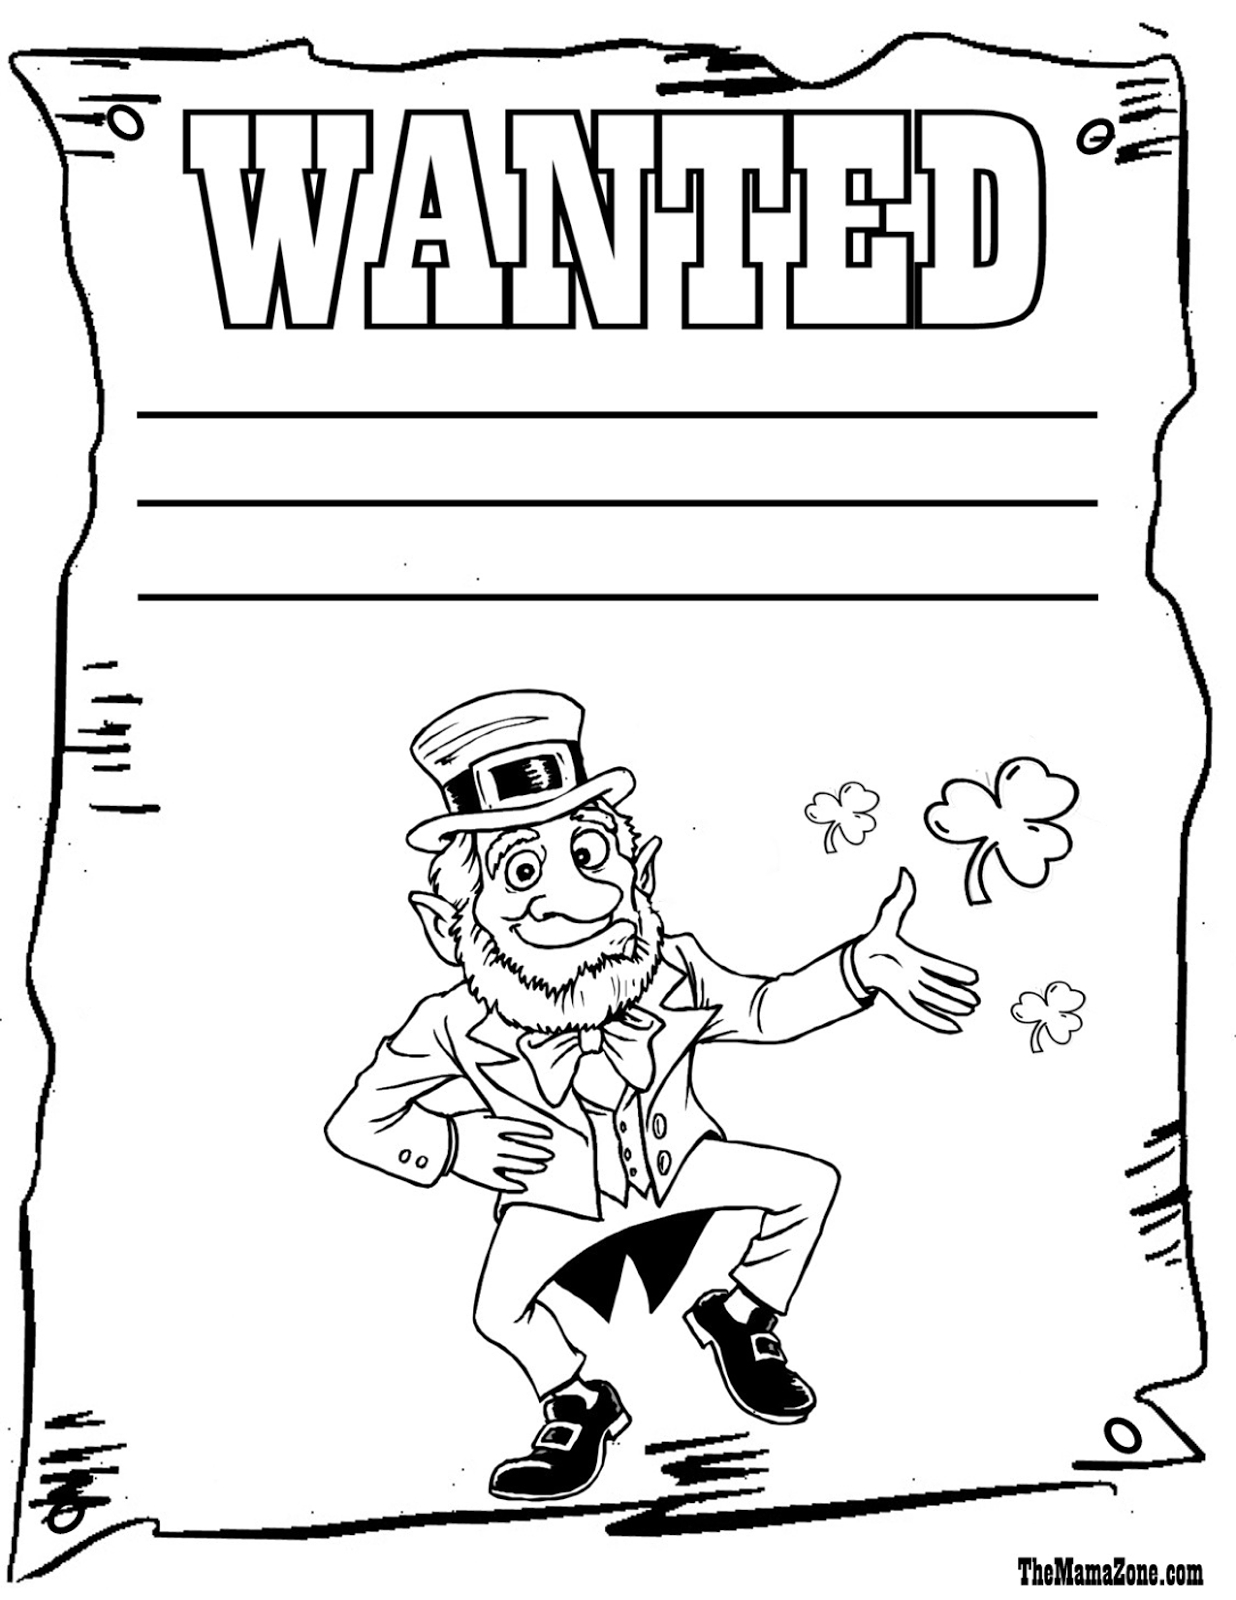 Frugal Mom And Wife: Free Printable St. Patrick's Day Coloring Pages! - Free Printable St Patrick Day Coloring Pages